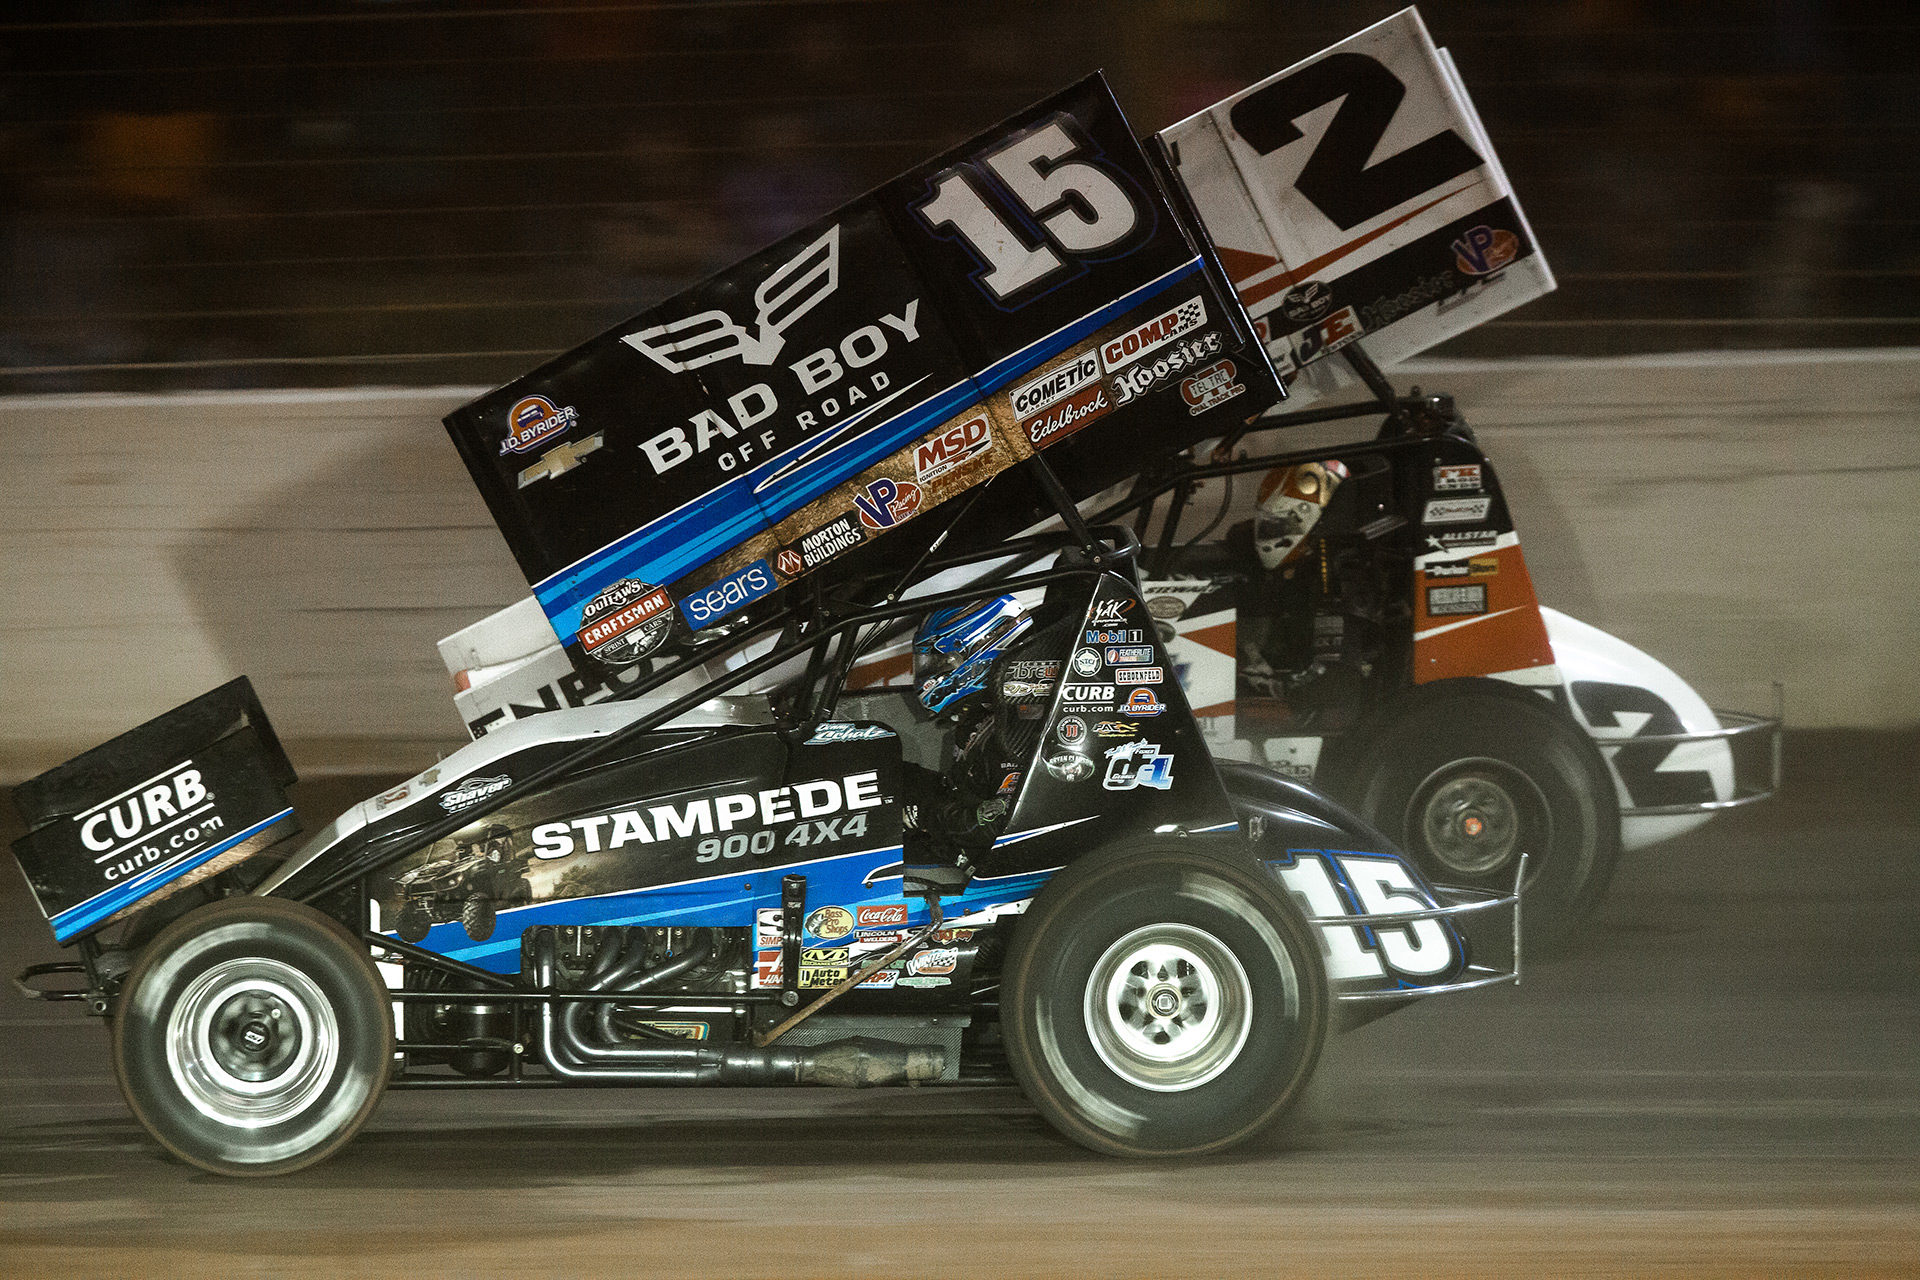 Donny Schatz passing Shane Stewart on the backstretch at The Dirt Track at Charlotte during the WoO World Finals Friday night Feature. Donny Schatz started 15th and made his way to 3rd place, picking up the Hard Charger award during the Friday night Feature at The 2016 WoO World Finals in Charlotte, NC.( Jeffrey Turford / TDP )